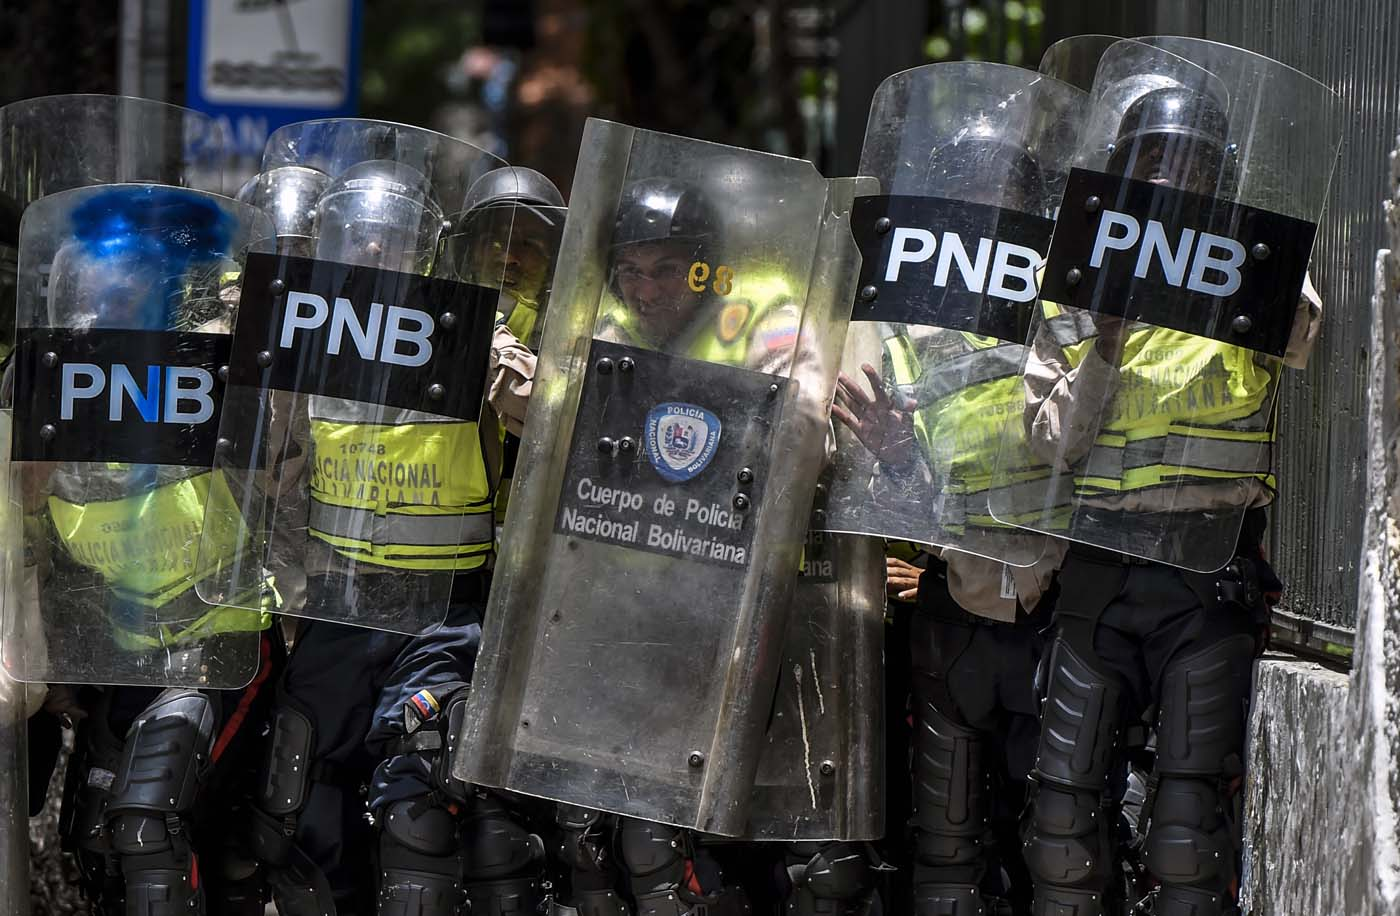 Bolivarian police agents hold their shields and prepare for confrontation during a protest against Nicolas Maduro